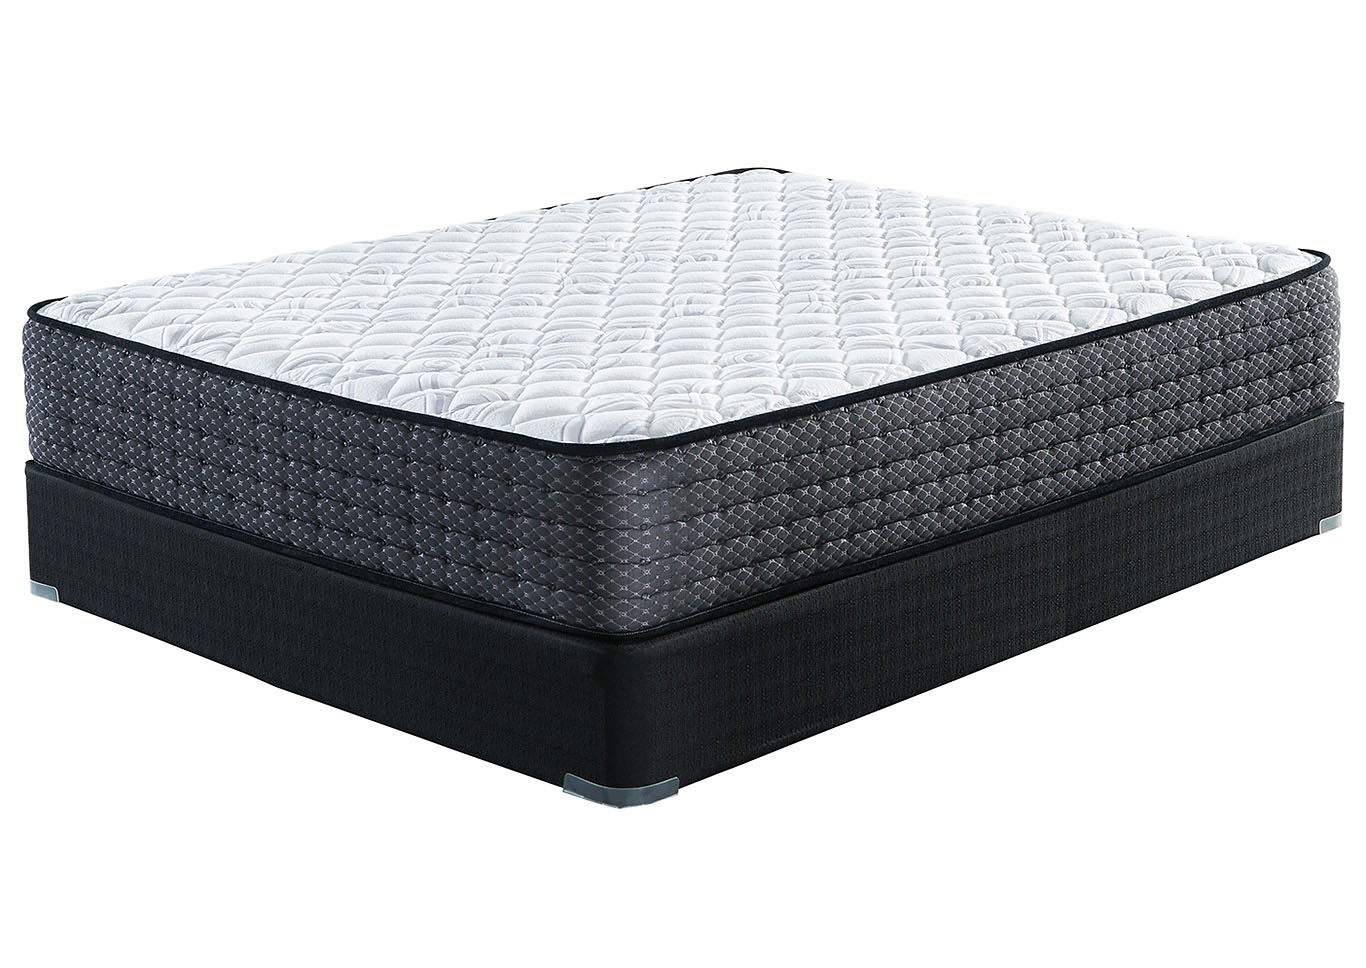 Limited Edition White Firm King Mattress w/Foundation,Sierra Sleep by Ashley